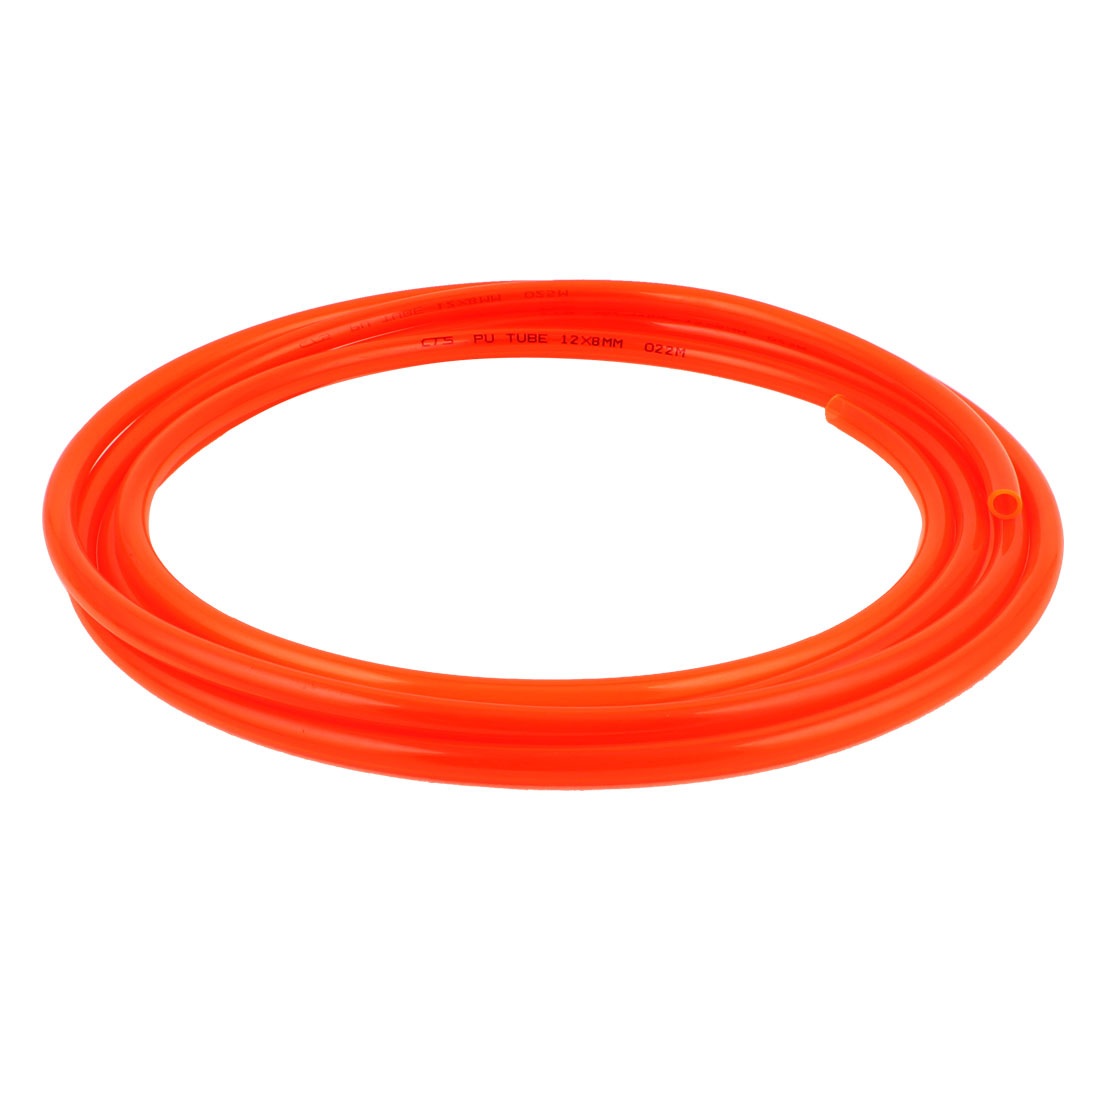 12mm x 8mm Clear Orange Fleaxible PU Tube Pneumatic Polyurethane Hose 4M Long